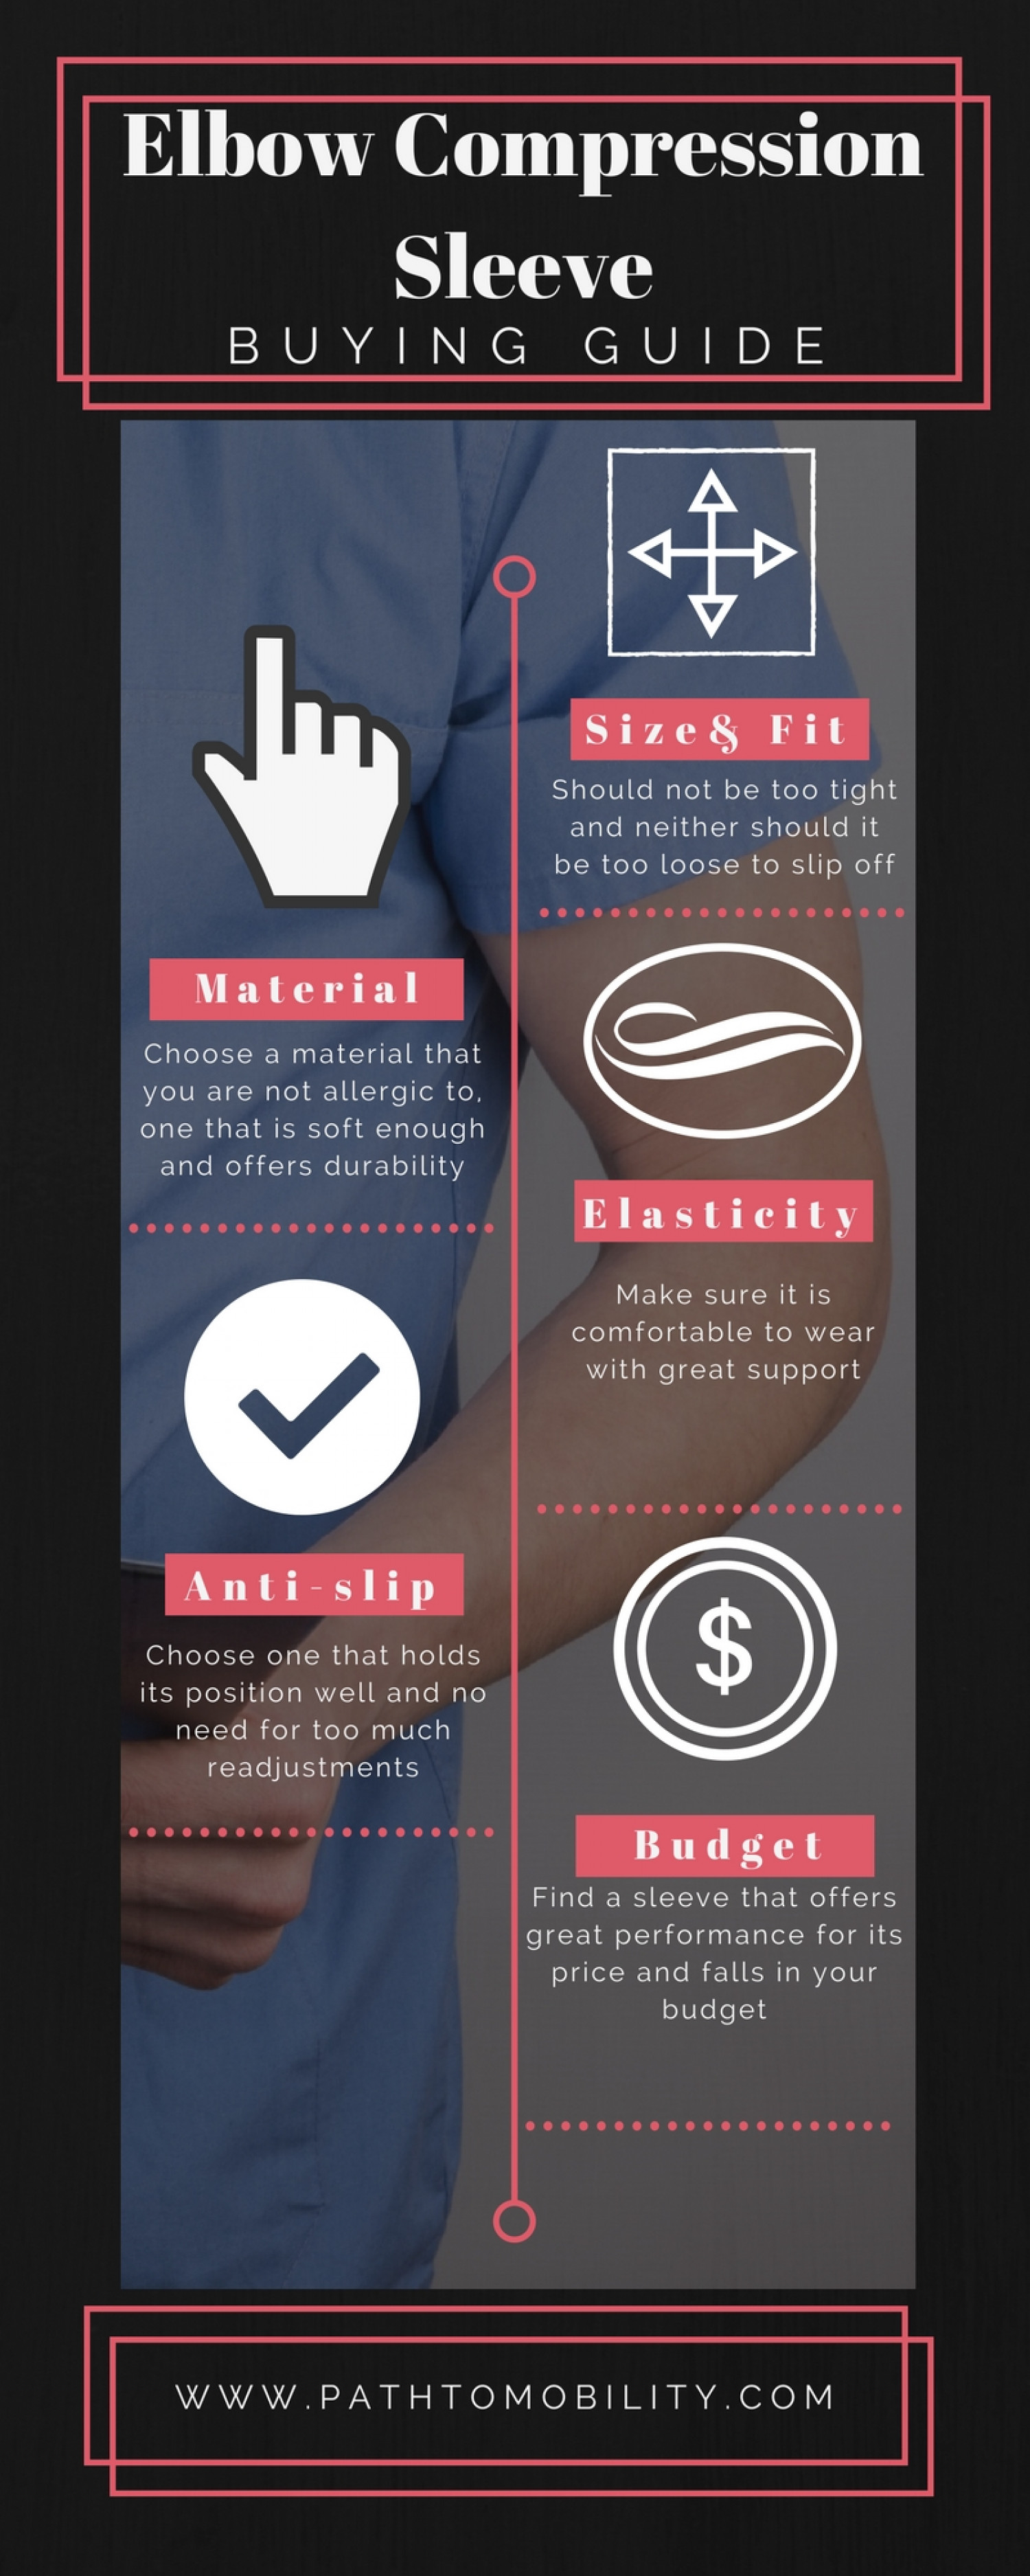 Elbow Compression Sleeve Buying Guide Infographic